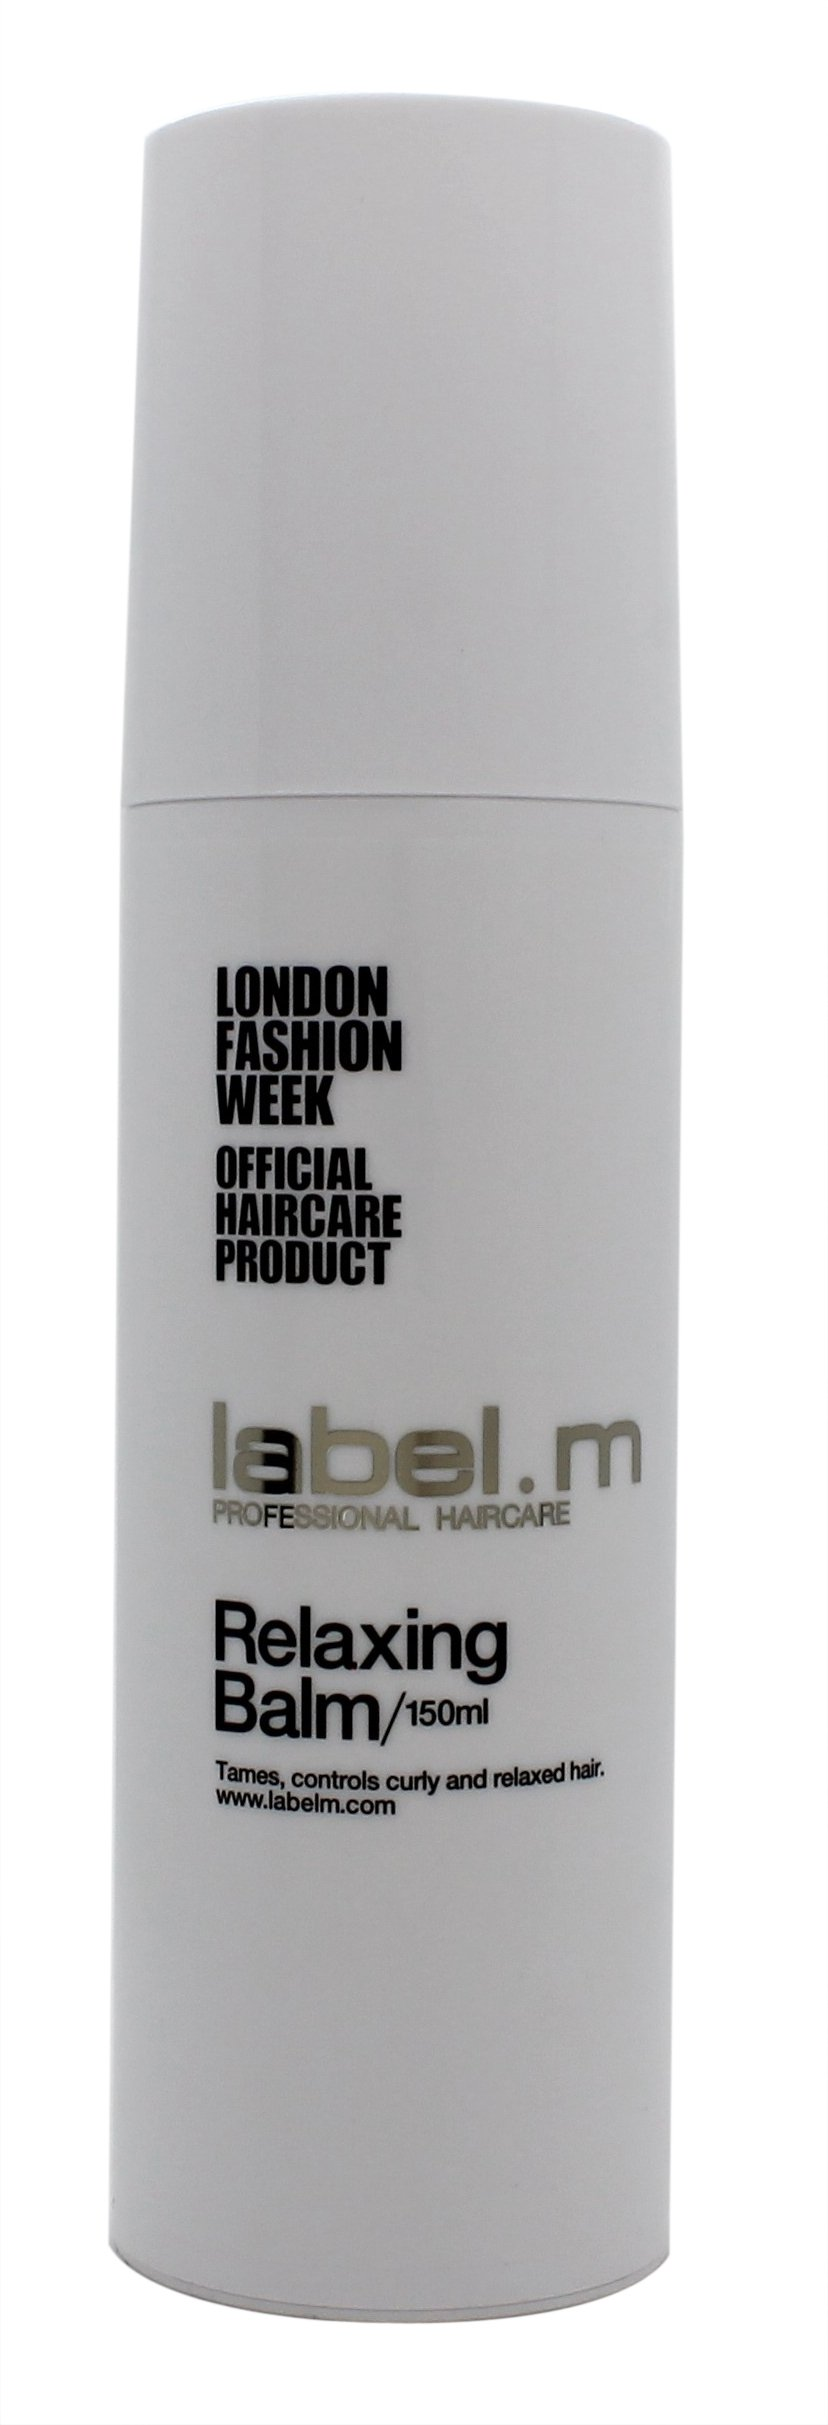 Label M Relaxing Balm 150ml/5.1oz by Label.m